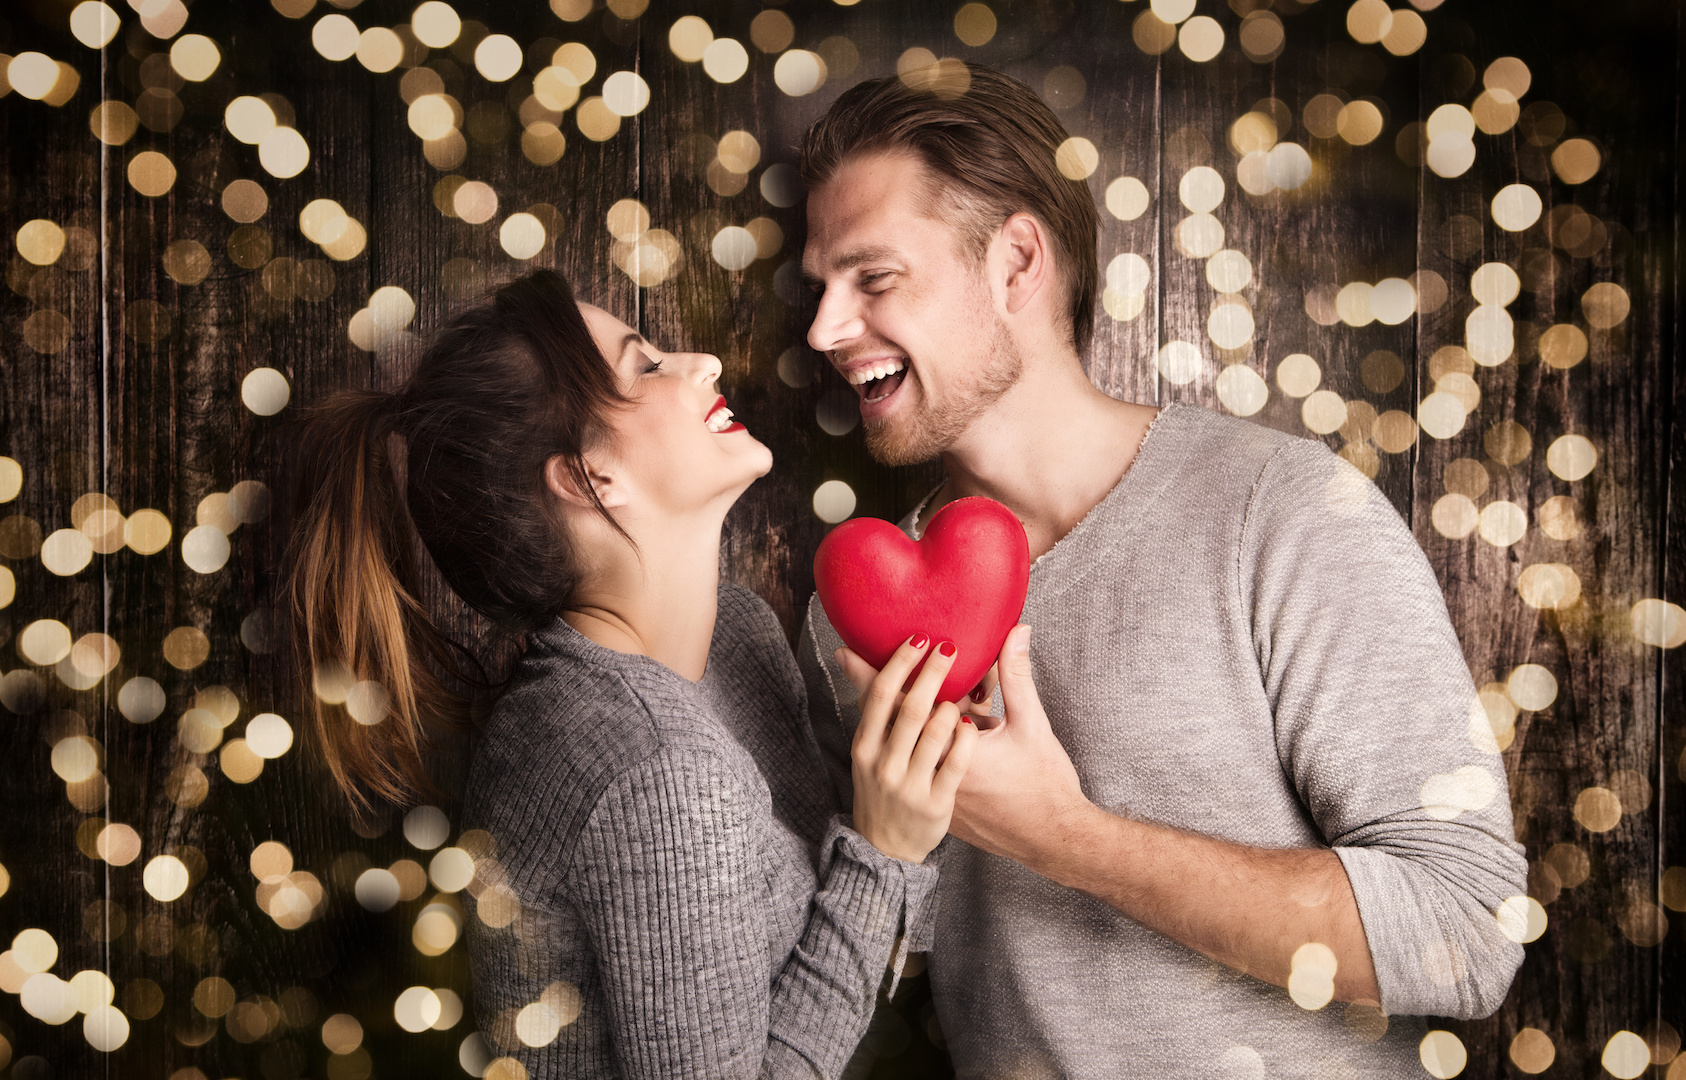 Romantic gestures - AdobeStock_75465206